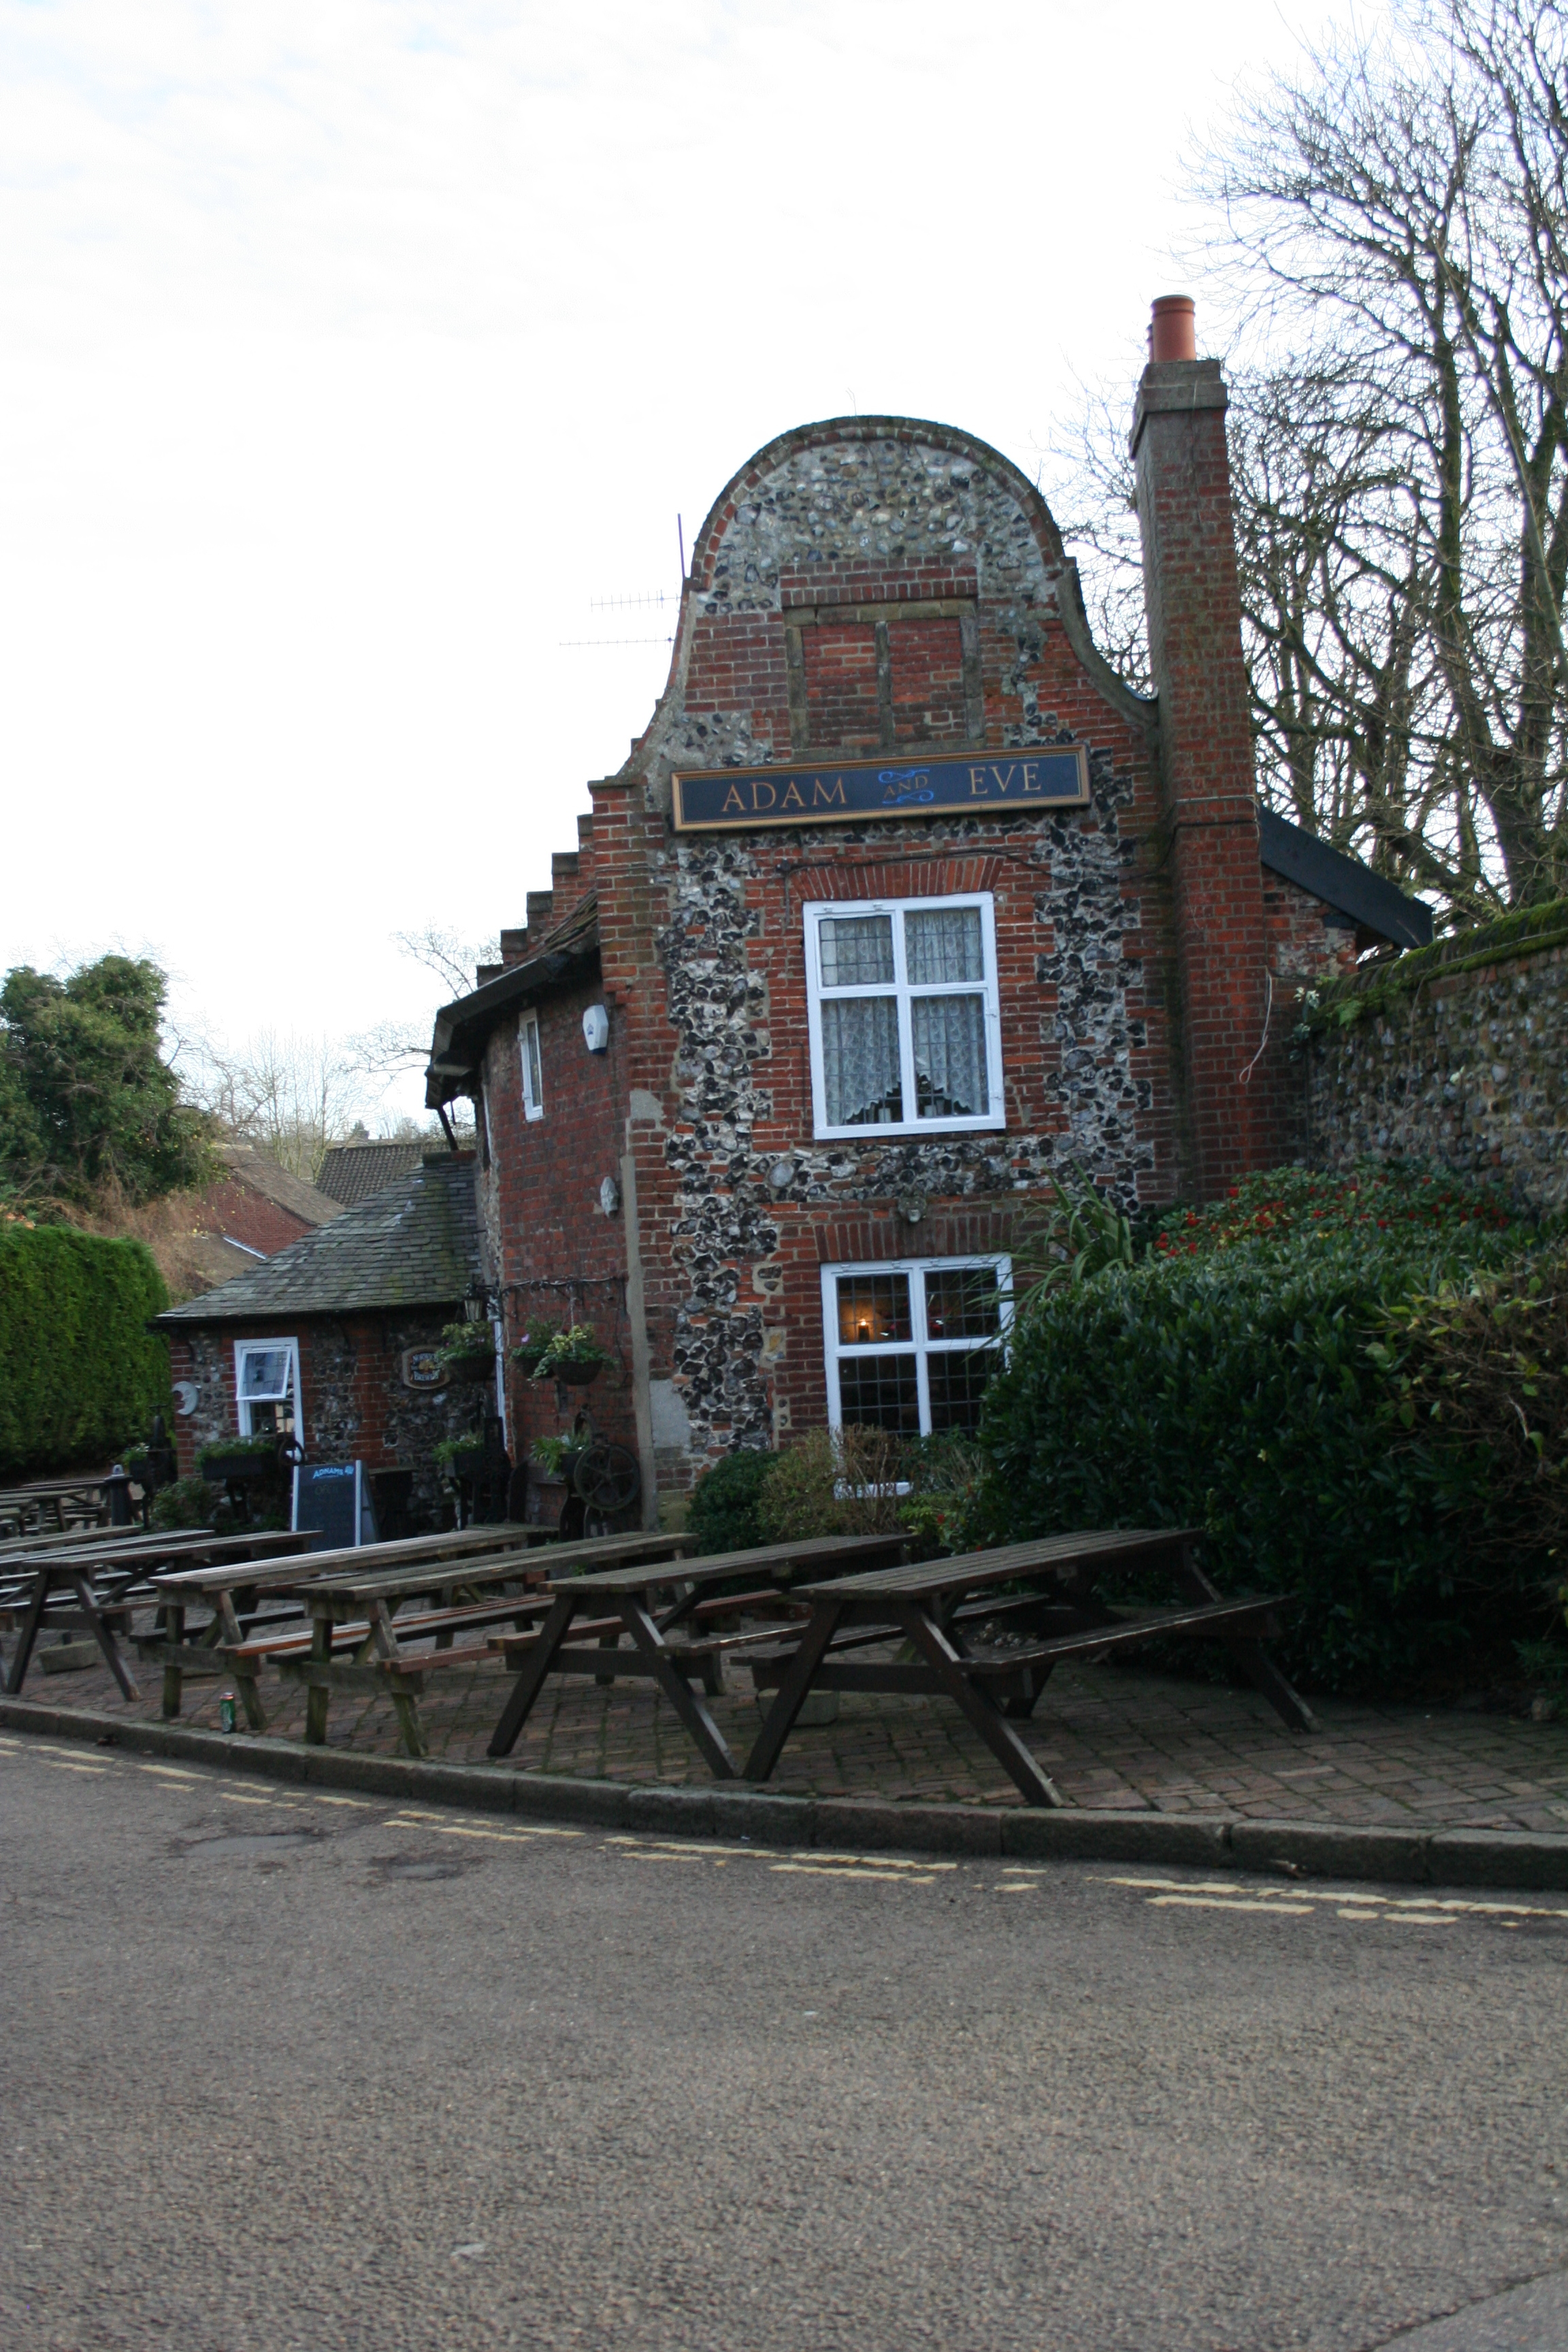 The Adam and Eve pub in Bishopgate, near Norwich Cathedral. It is claimed to be the oldest pub in the city, with the earliest tavern on site dating back to at least 1249.